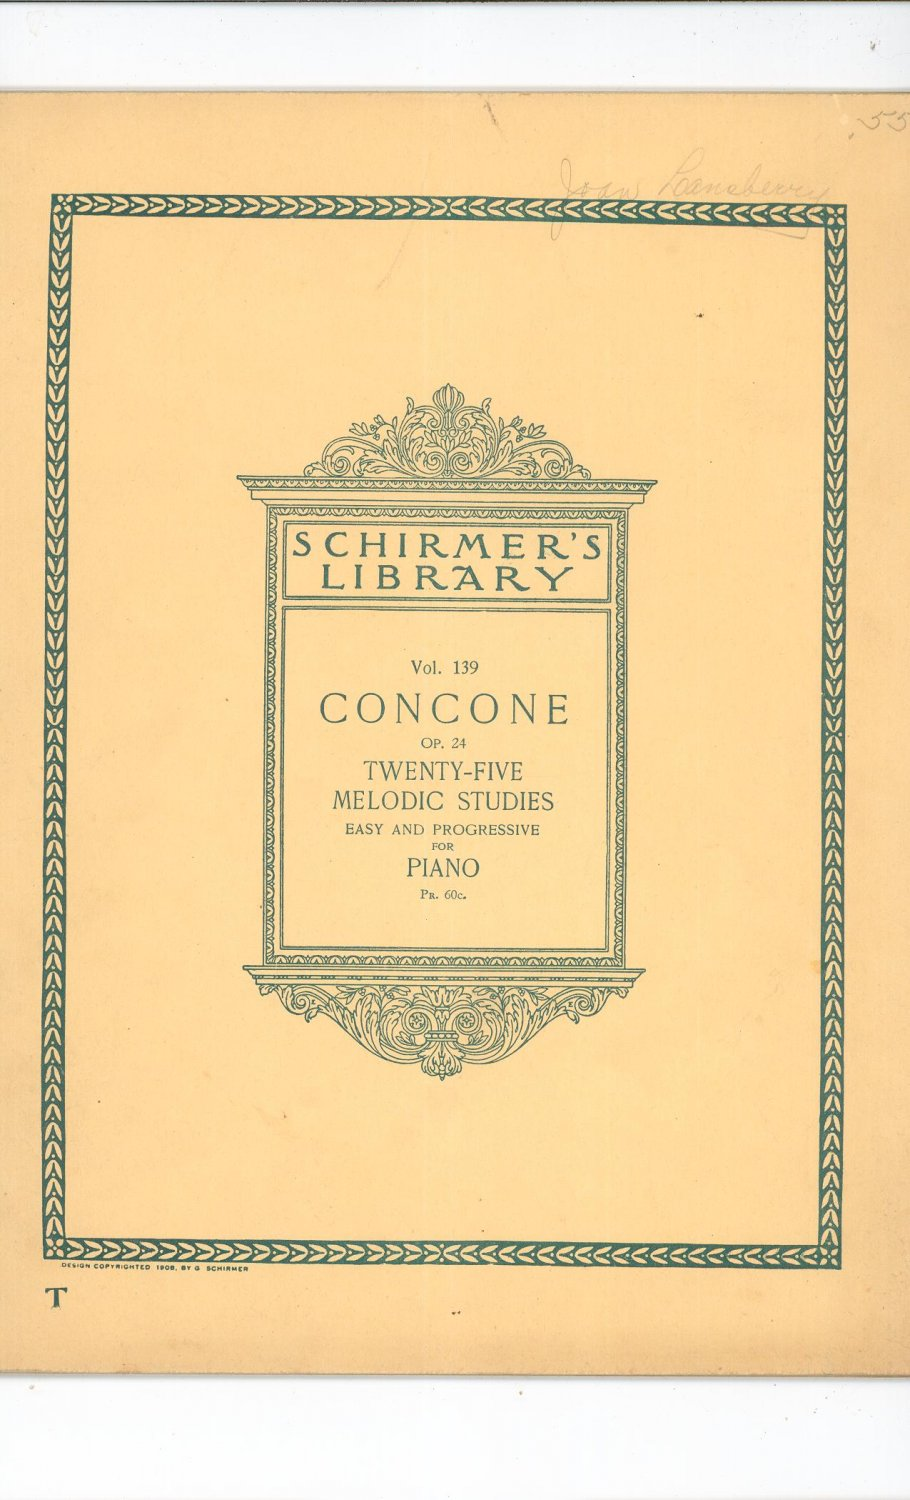 Vintage Concone OP. 24 For Piano Schirmer's Library Volume 139